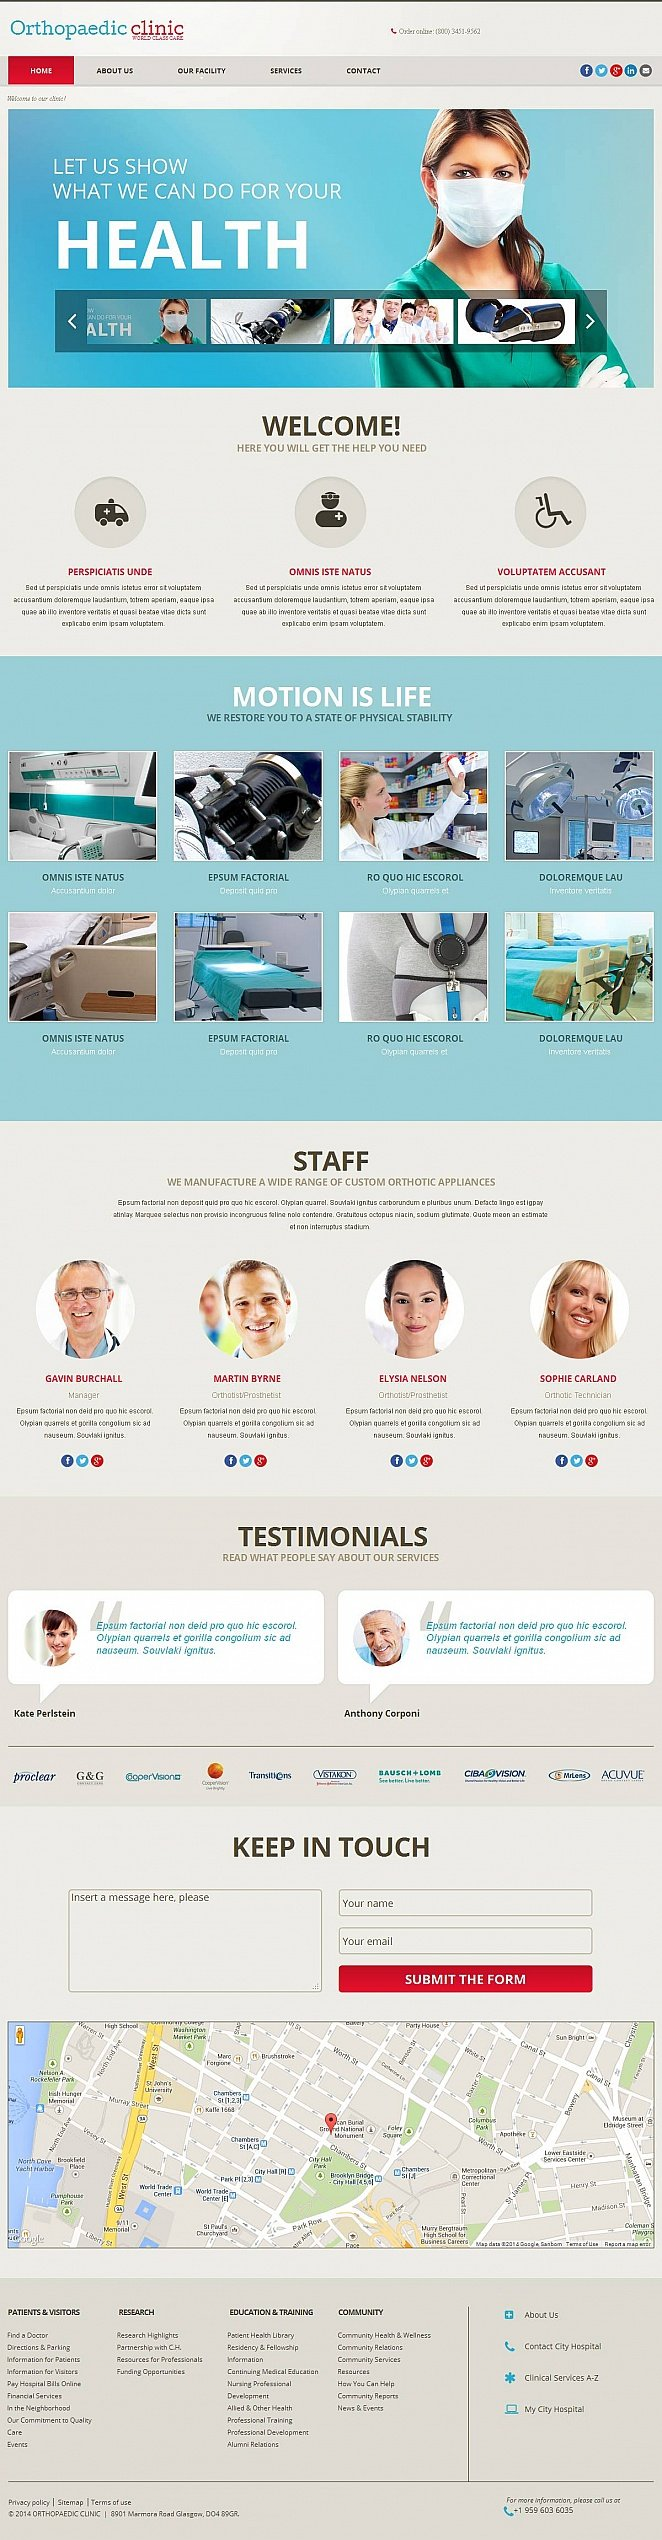 Orthopedic Treatment Website Template - image